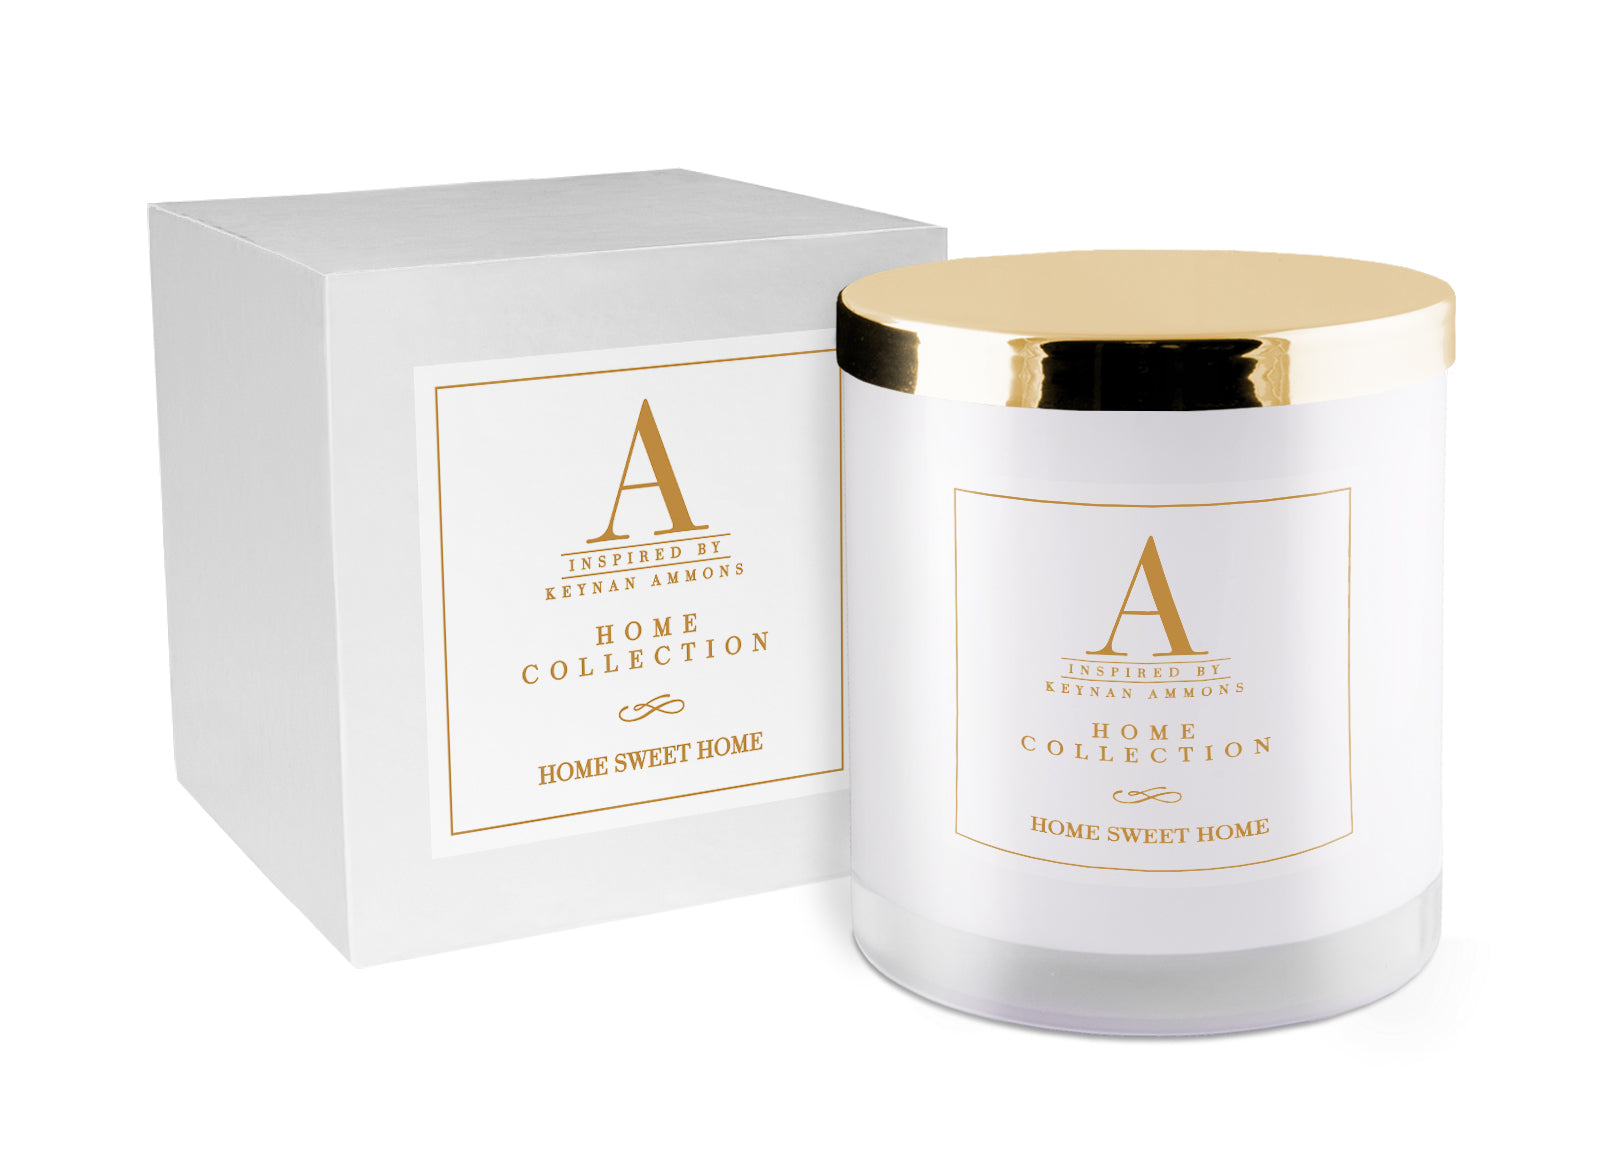 HOME SWEET HOME - Ammons Home Candle Collection